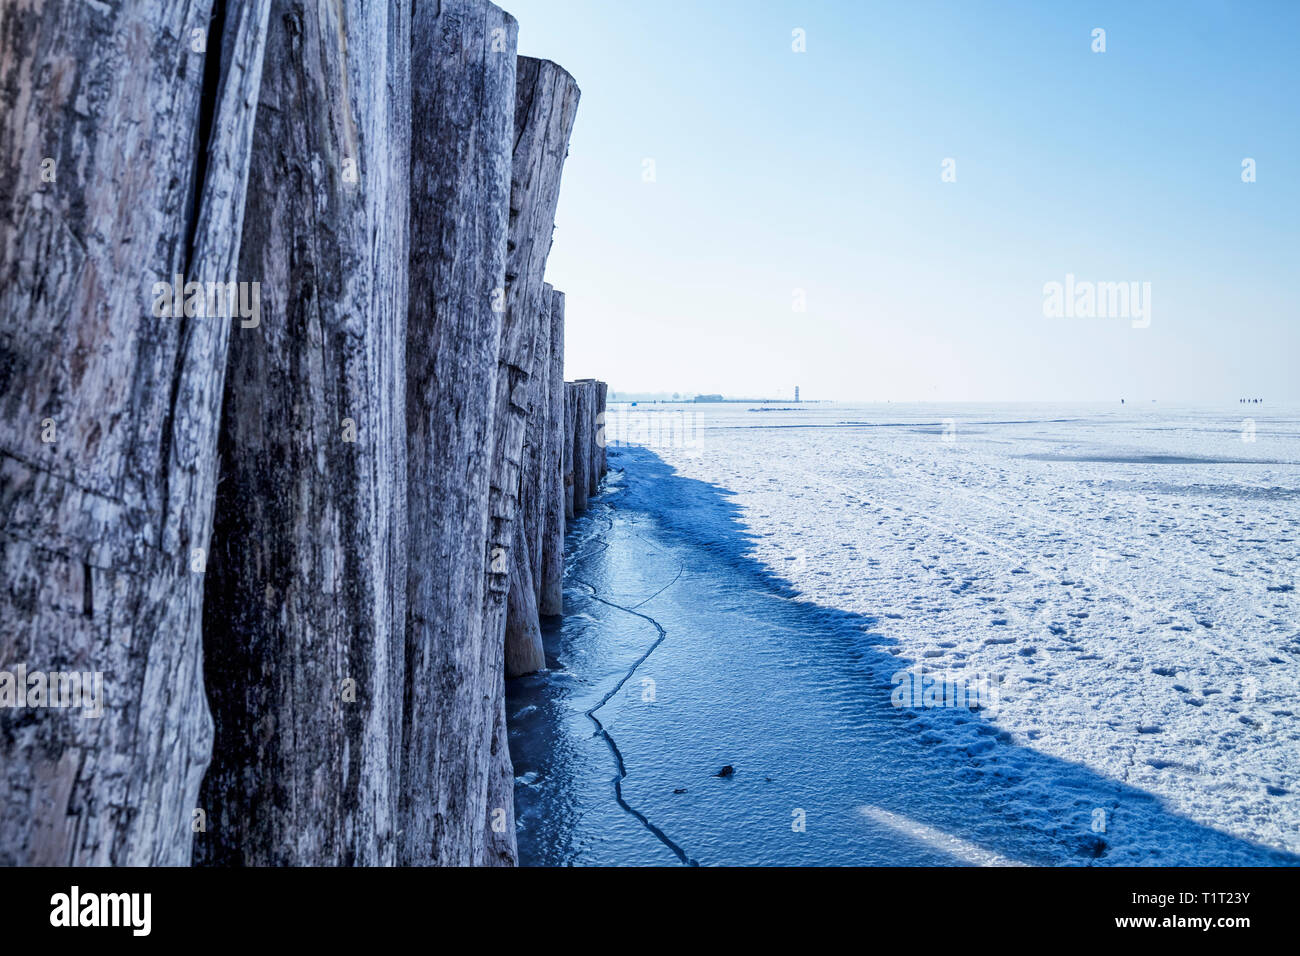 Wooden planks on frozen lake - Stock Image